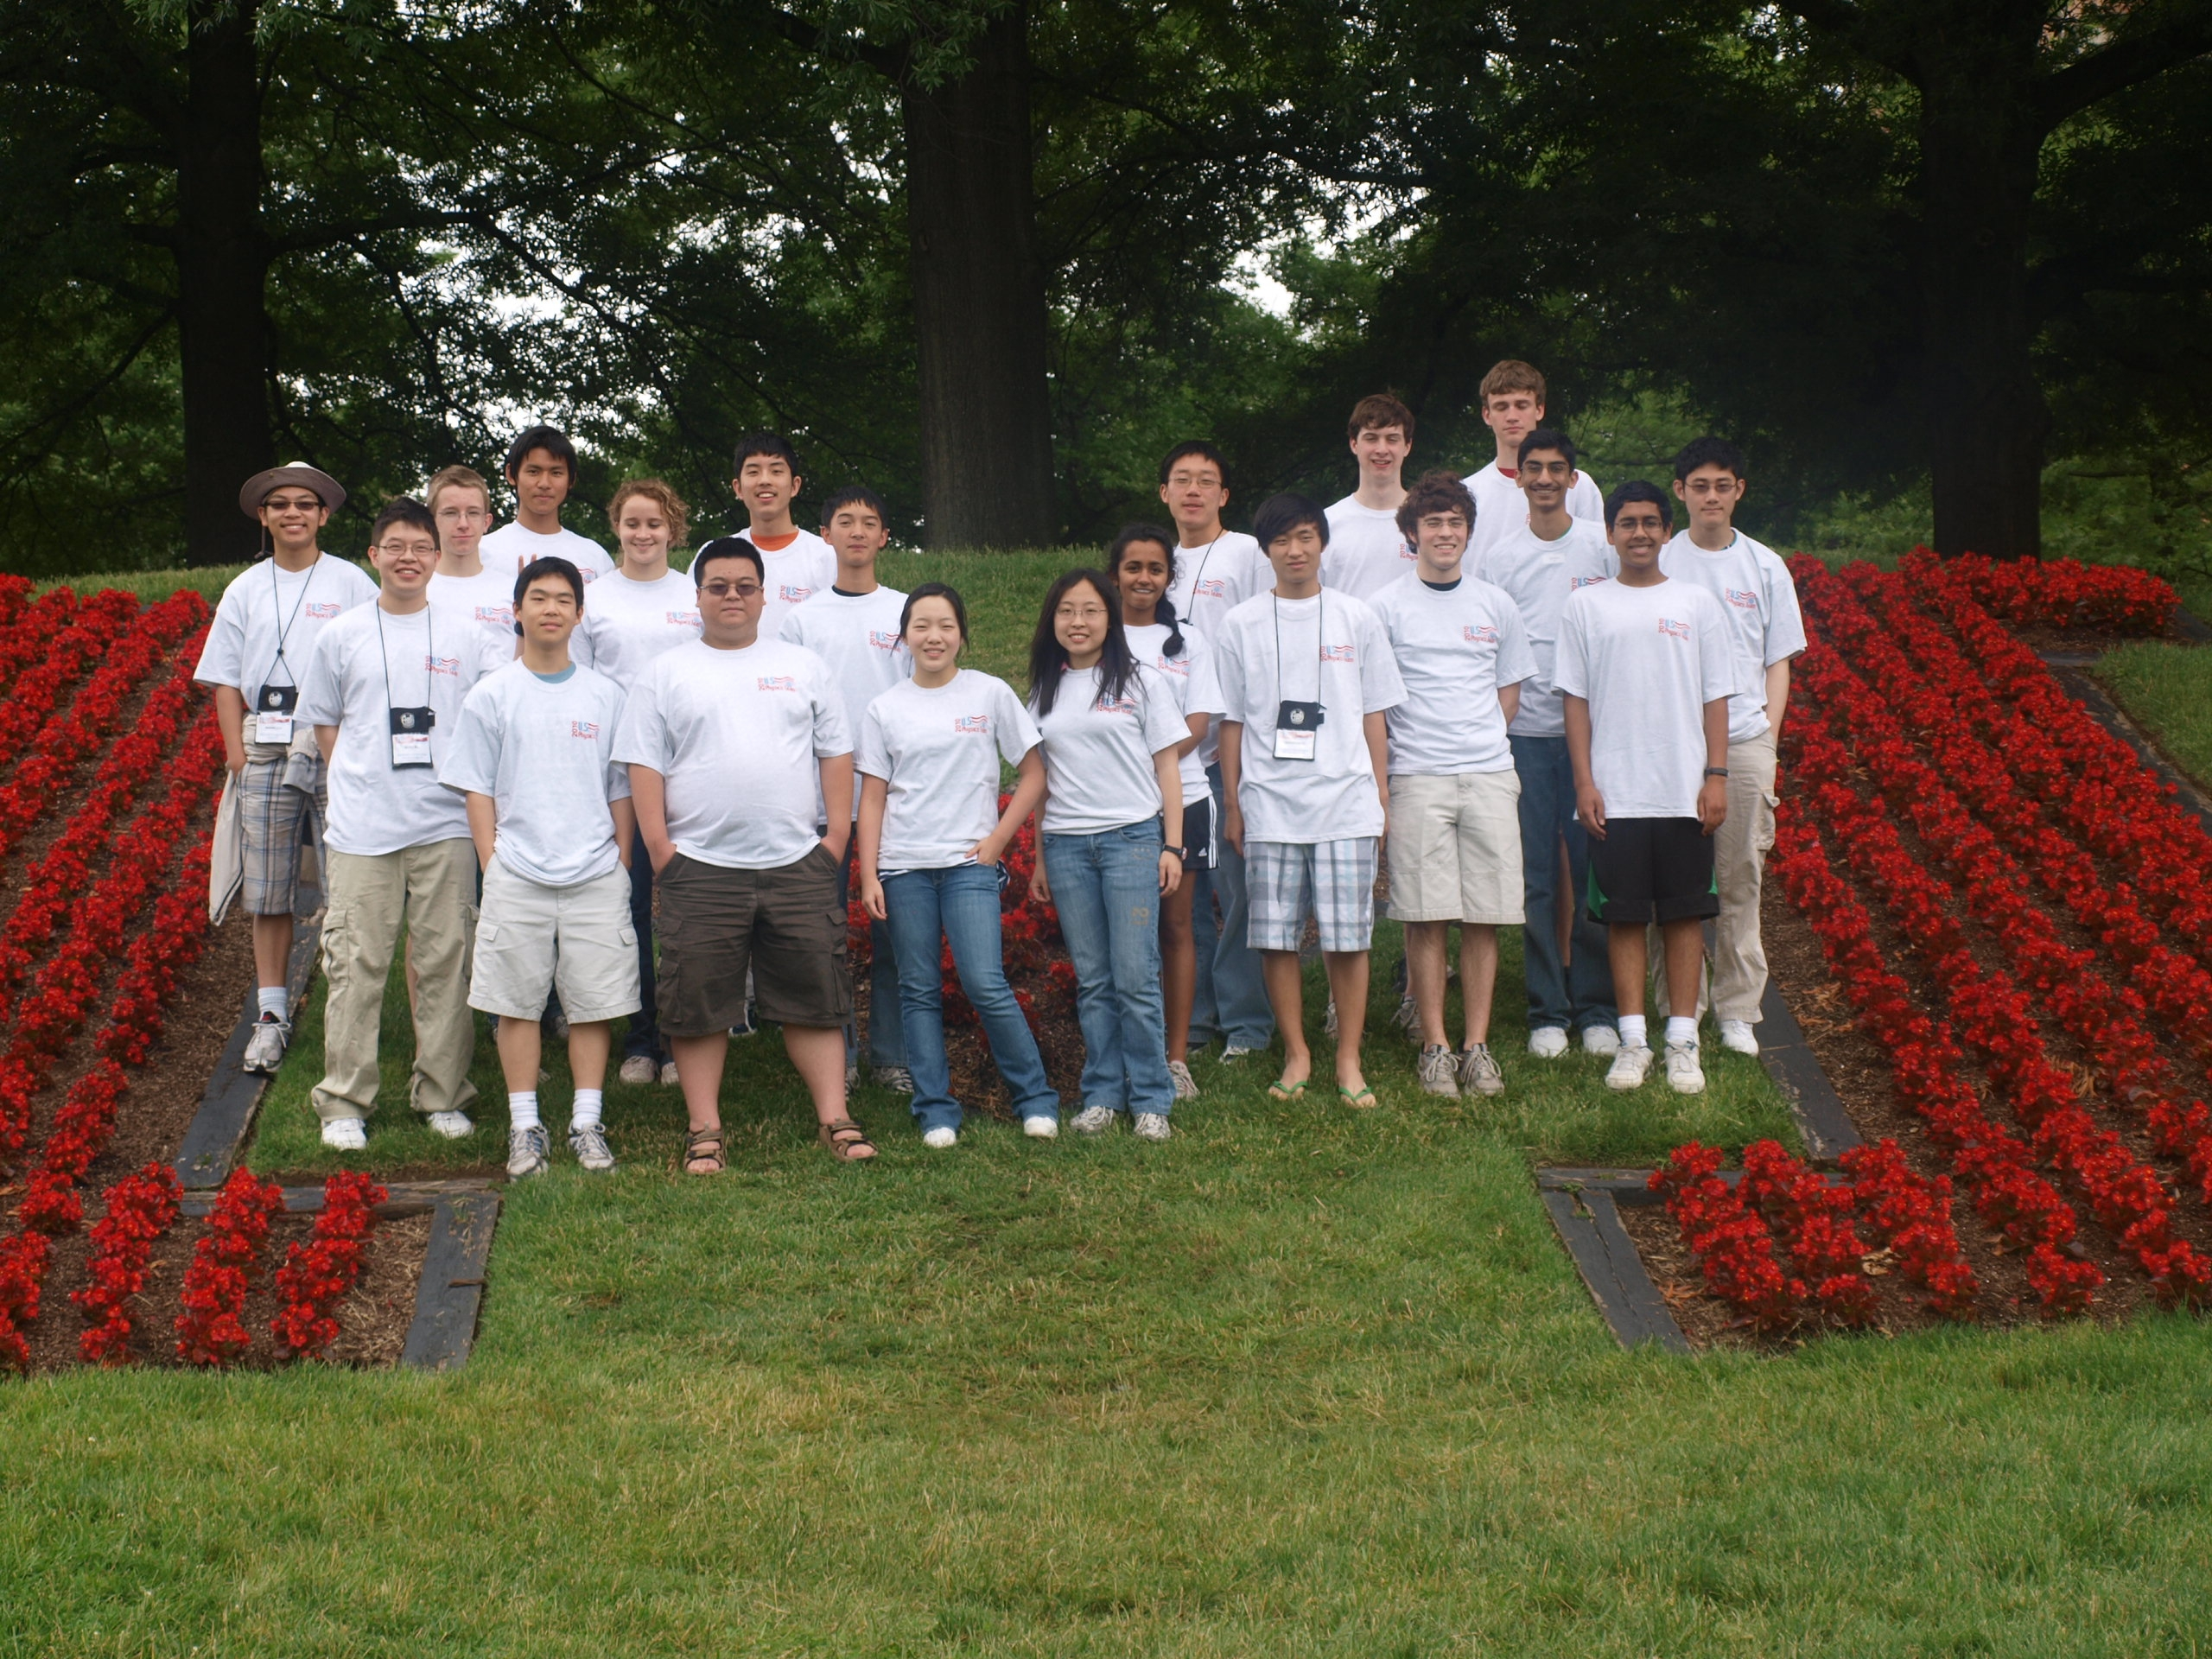 2010 Physics Team at UMD